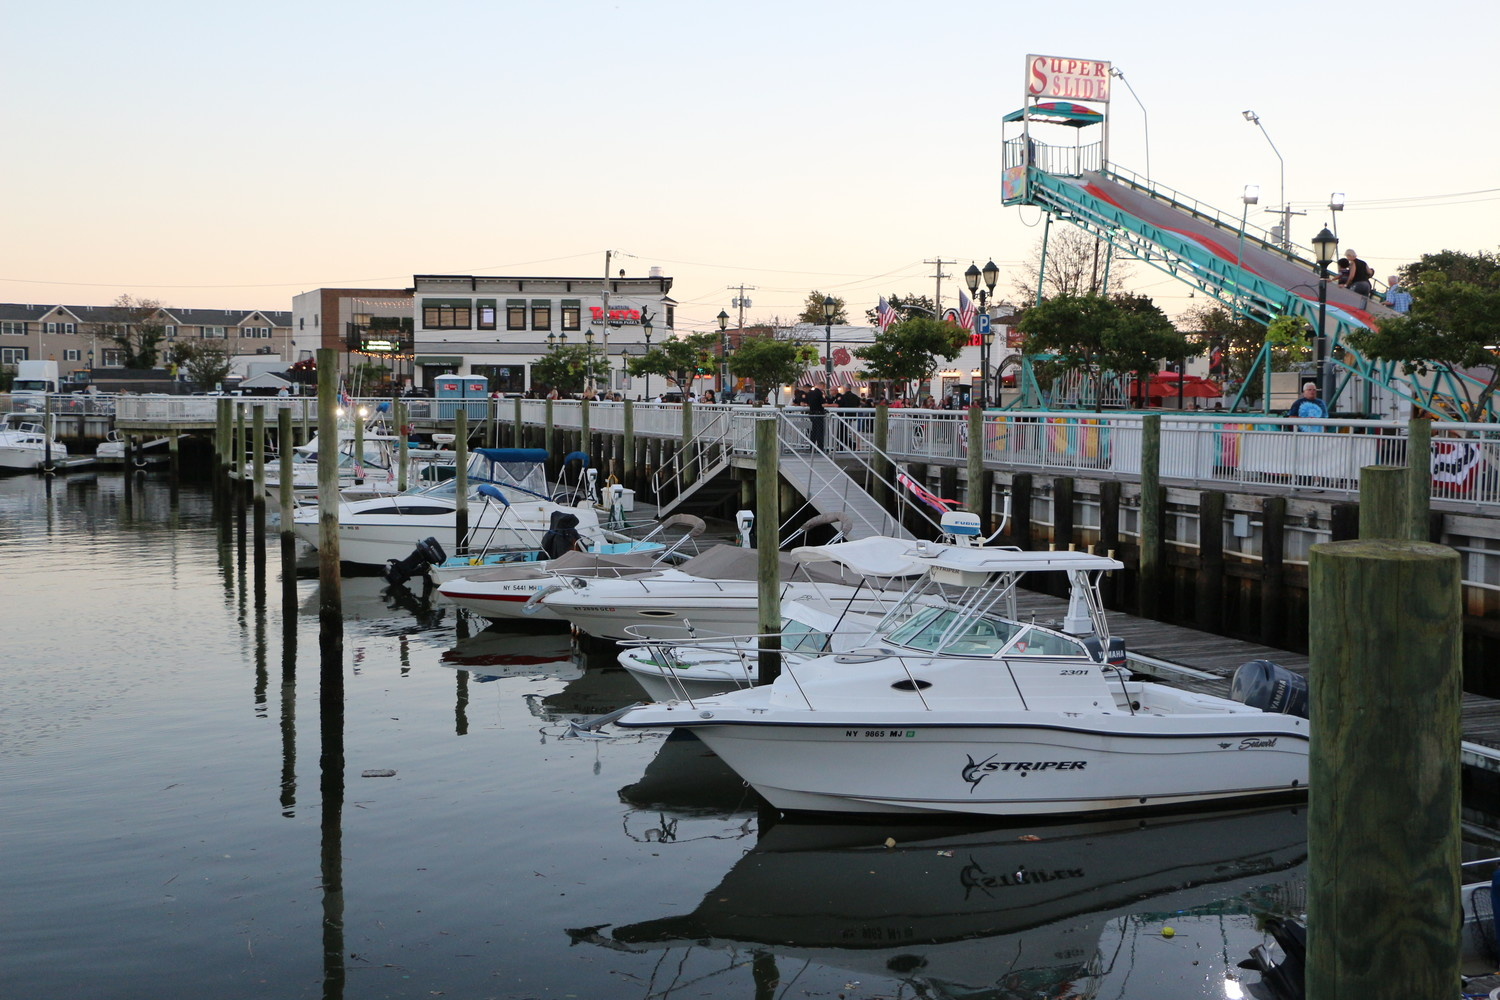 The Stars & Stripes festival took place Sept. 13 through 15 on the water.